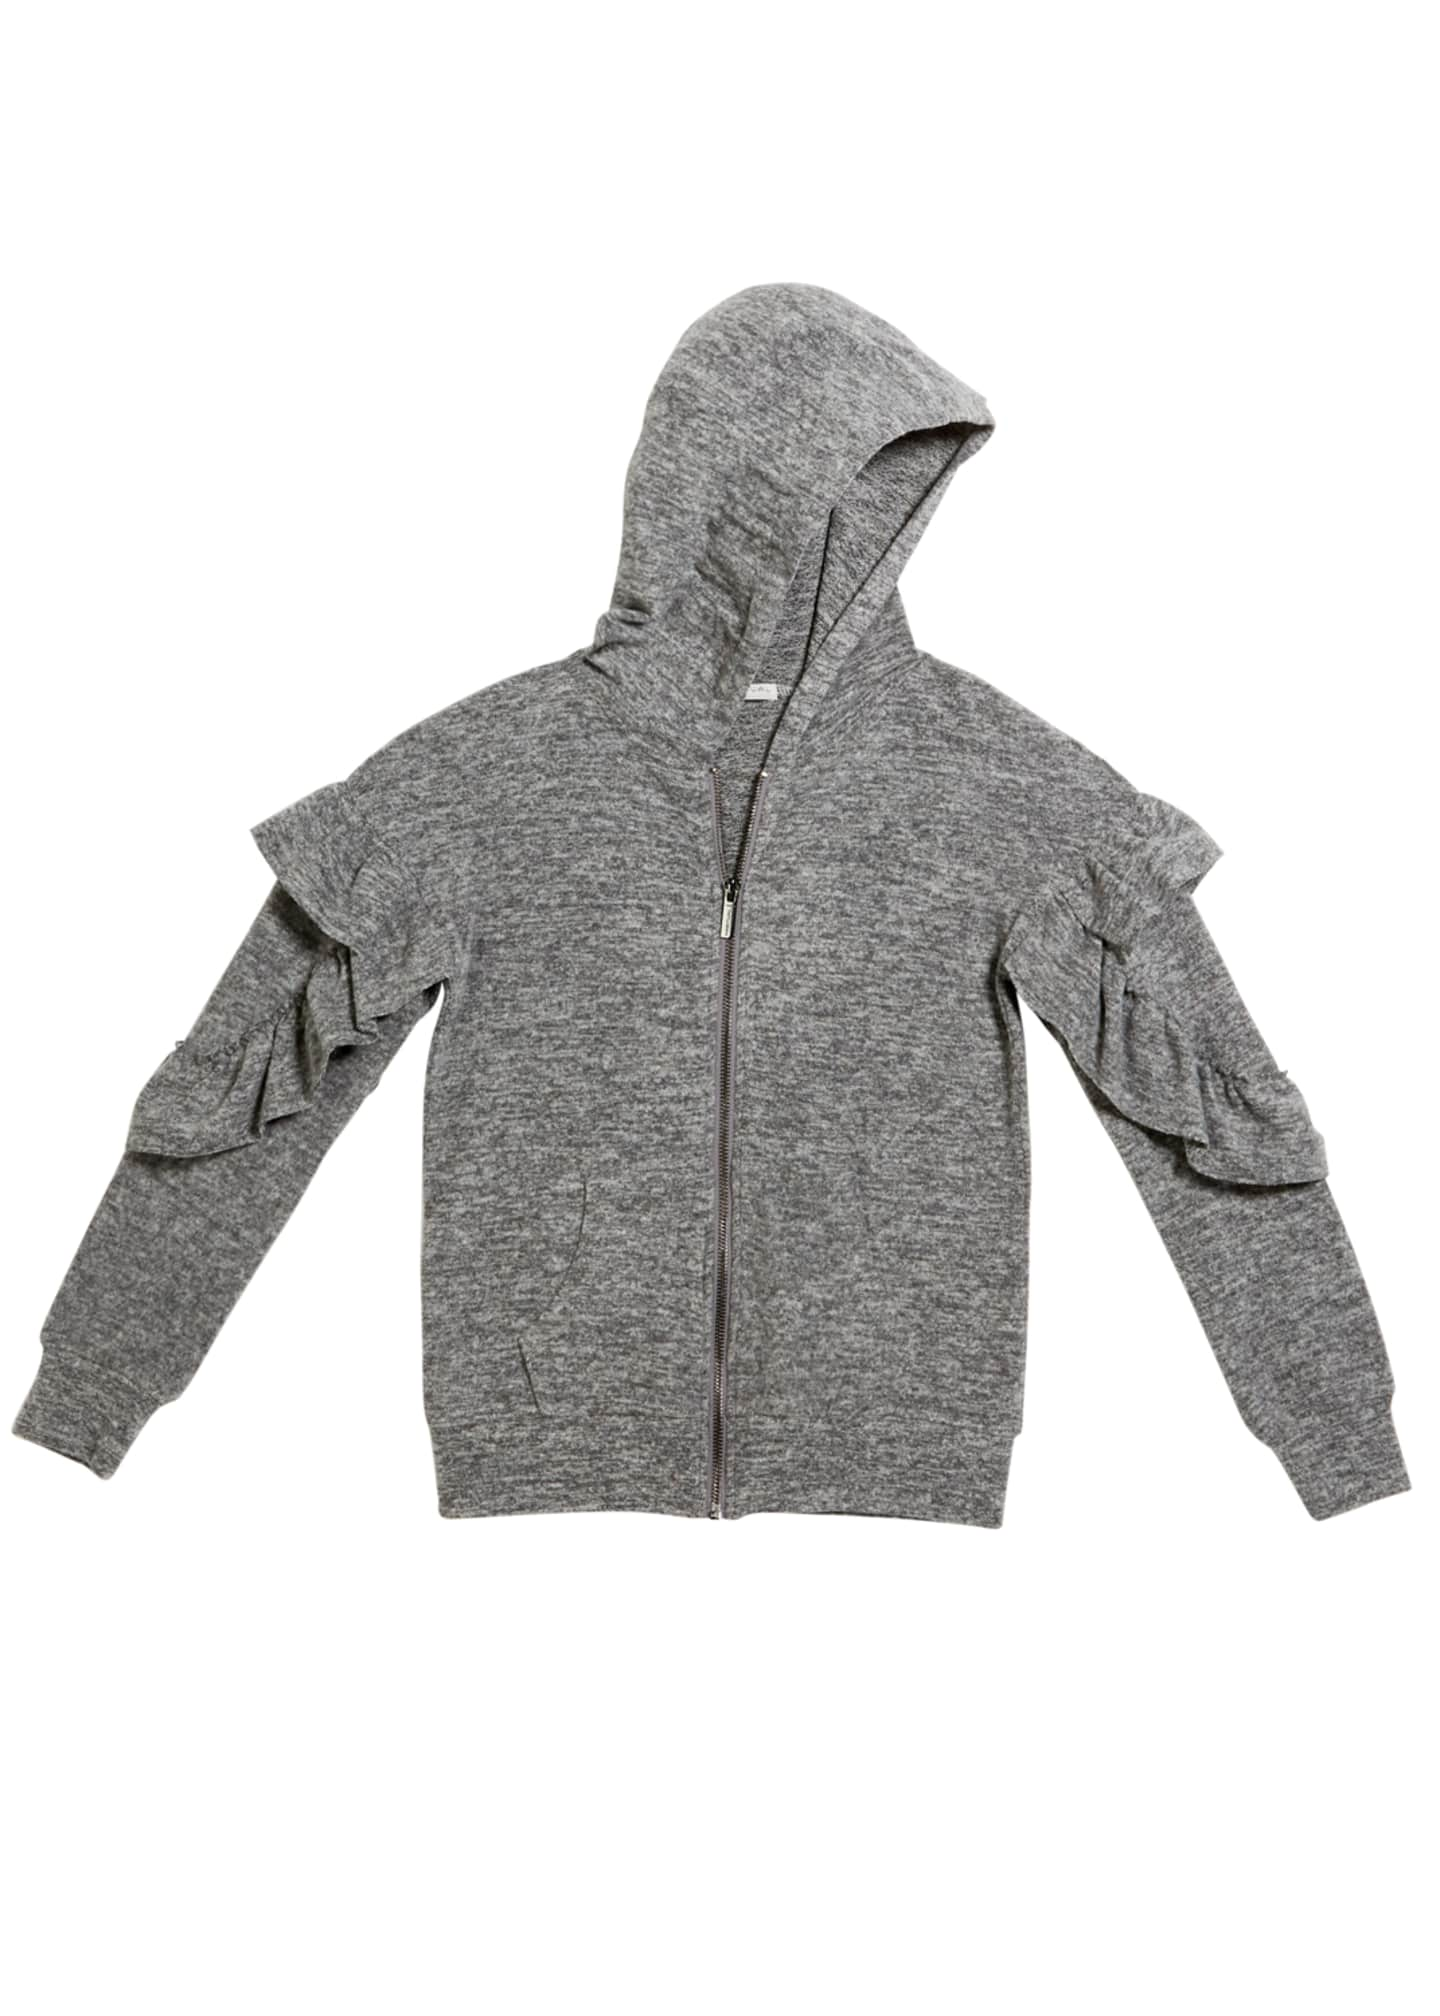 Habitual Kinsley Zip-Up Ruffle Trim Hoodie, Size 7-14